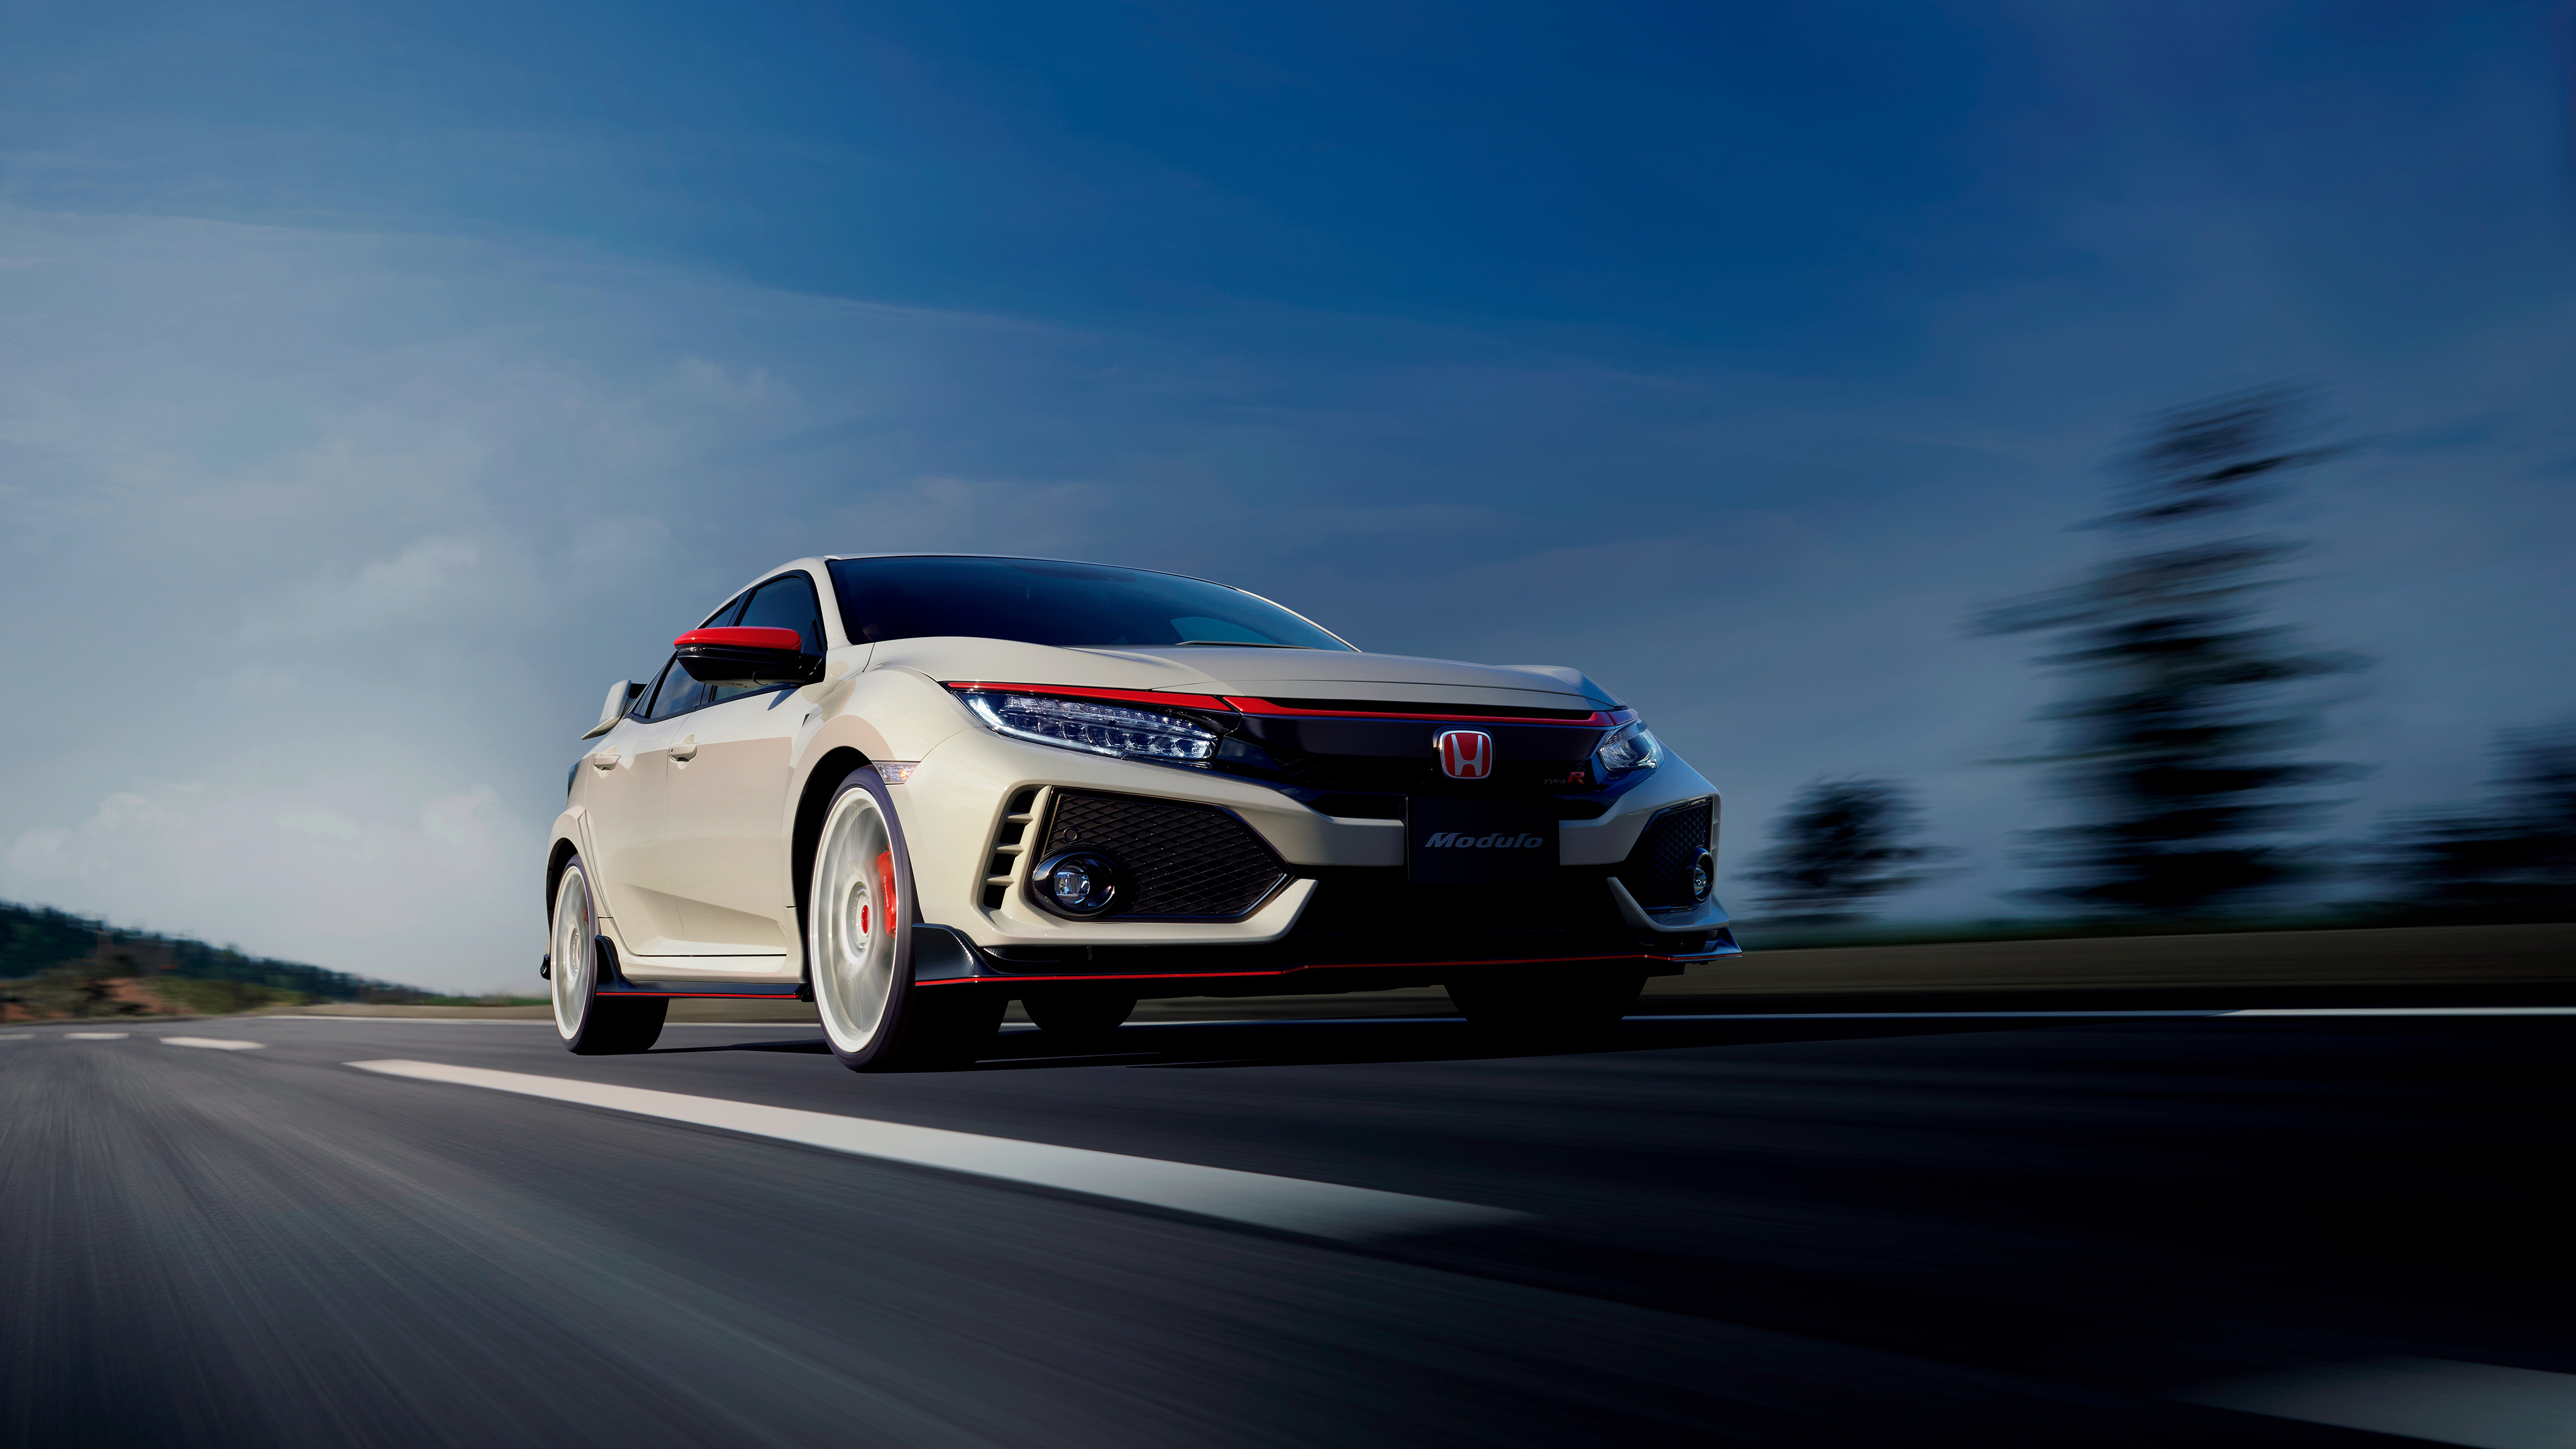 2017 Modulo Honda Civic Type R 4k Wallpaper Hd Car Honda Civic